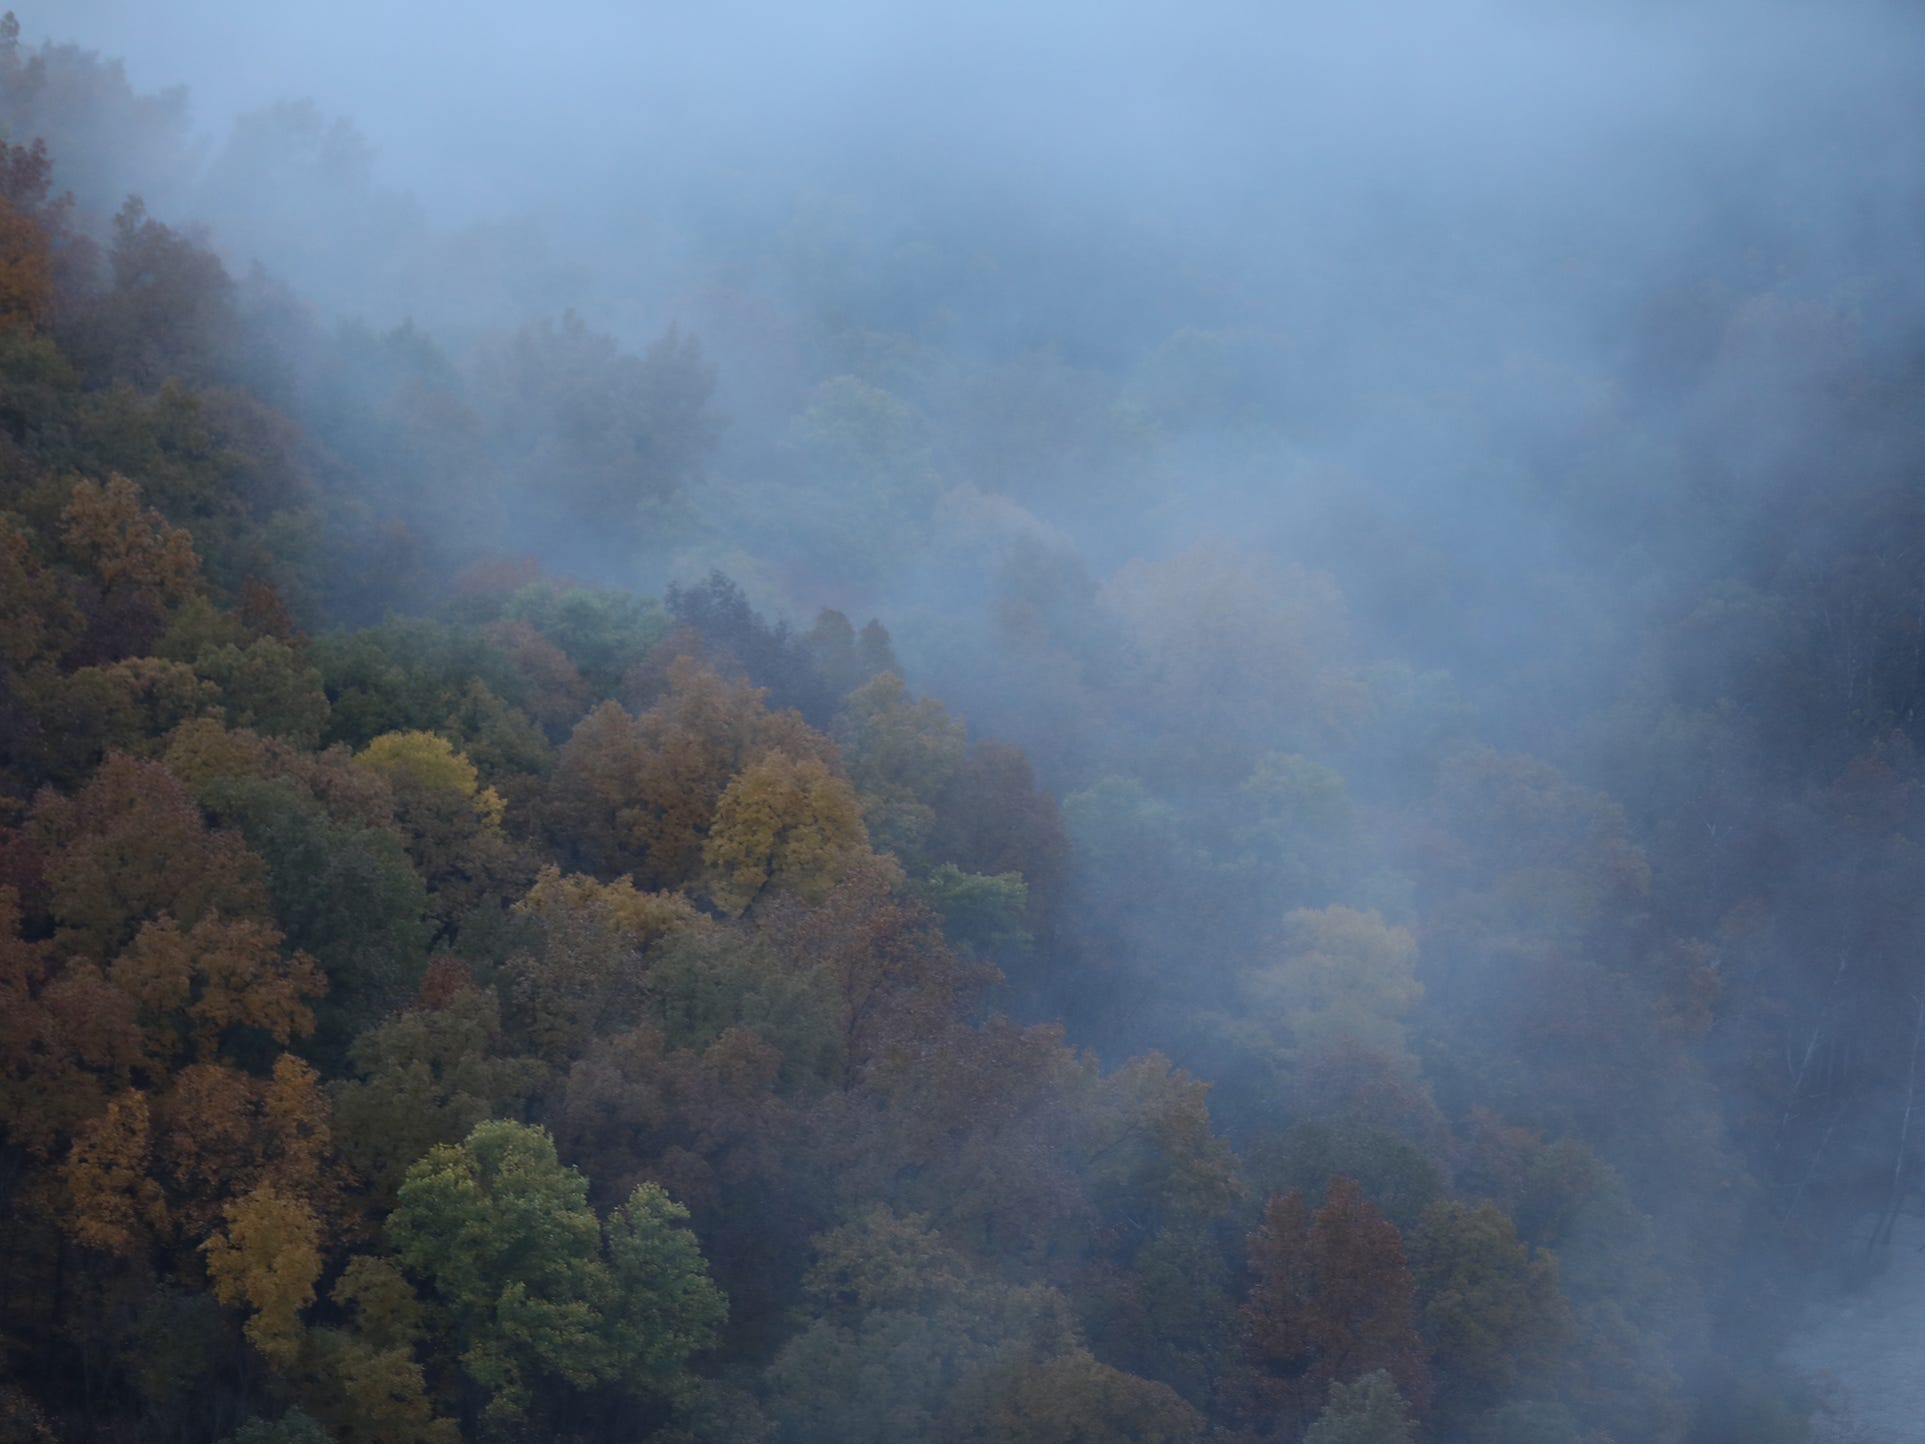 Fog rolls over the trees at the Archery Field Overlook in Letchworth State Park.